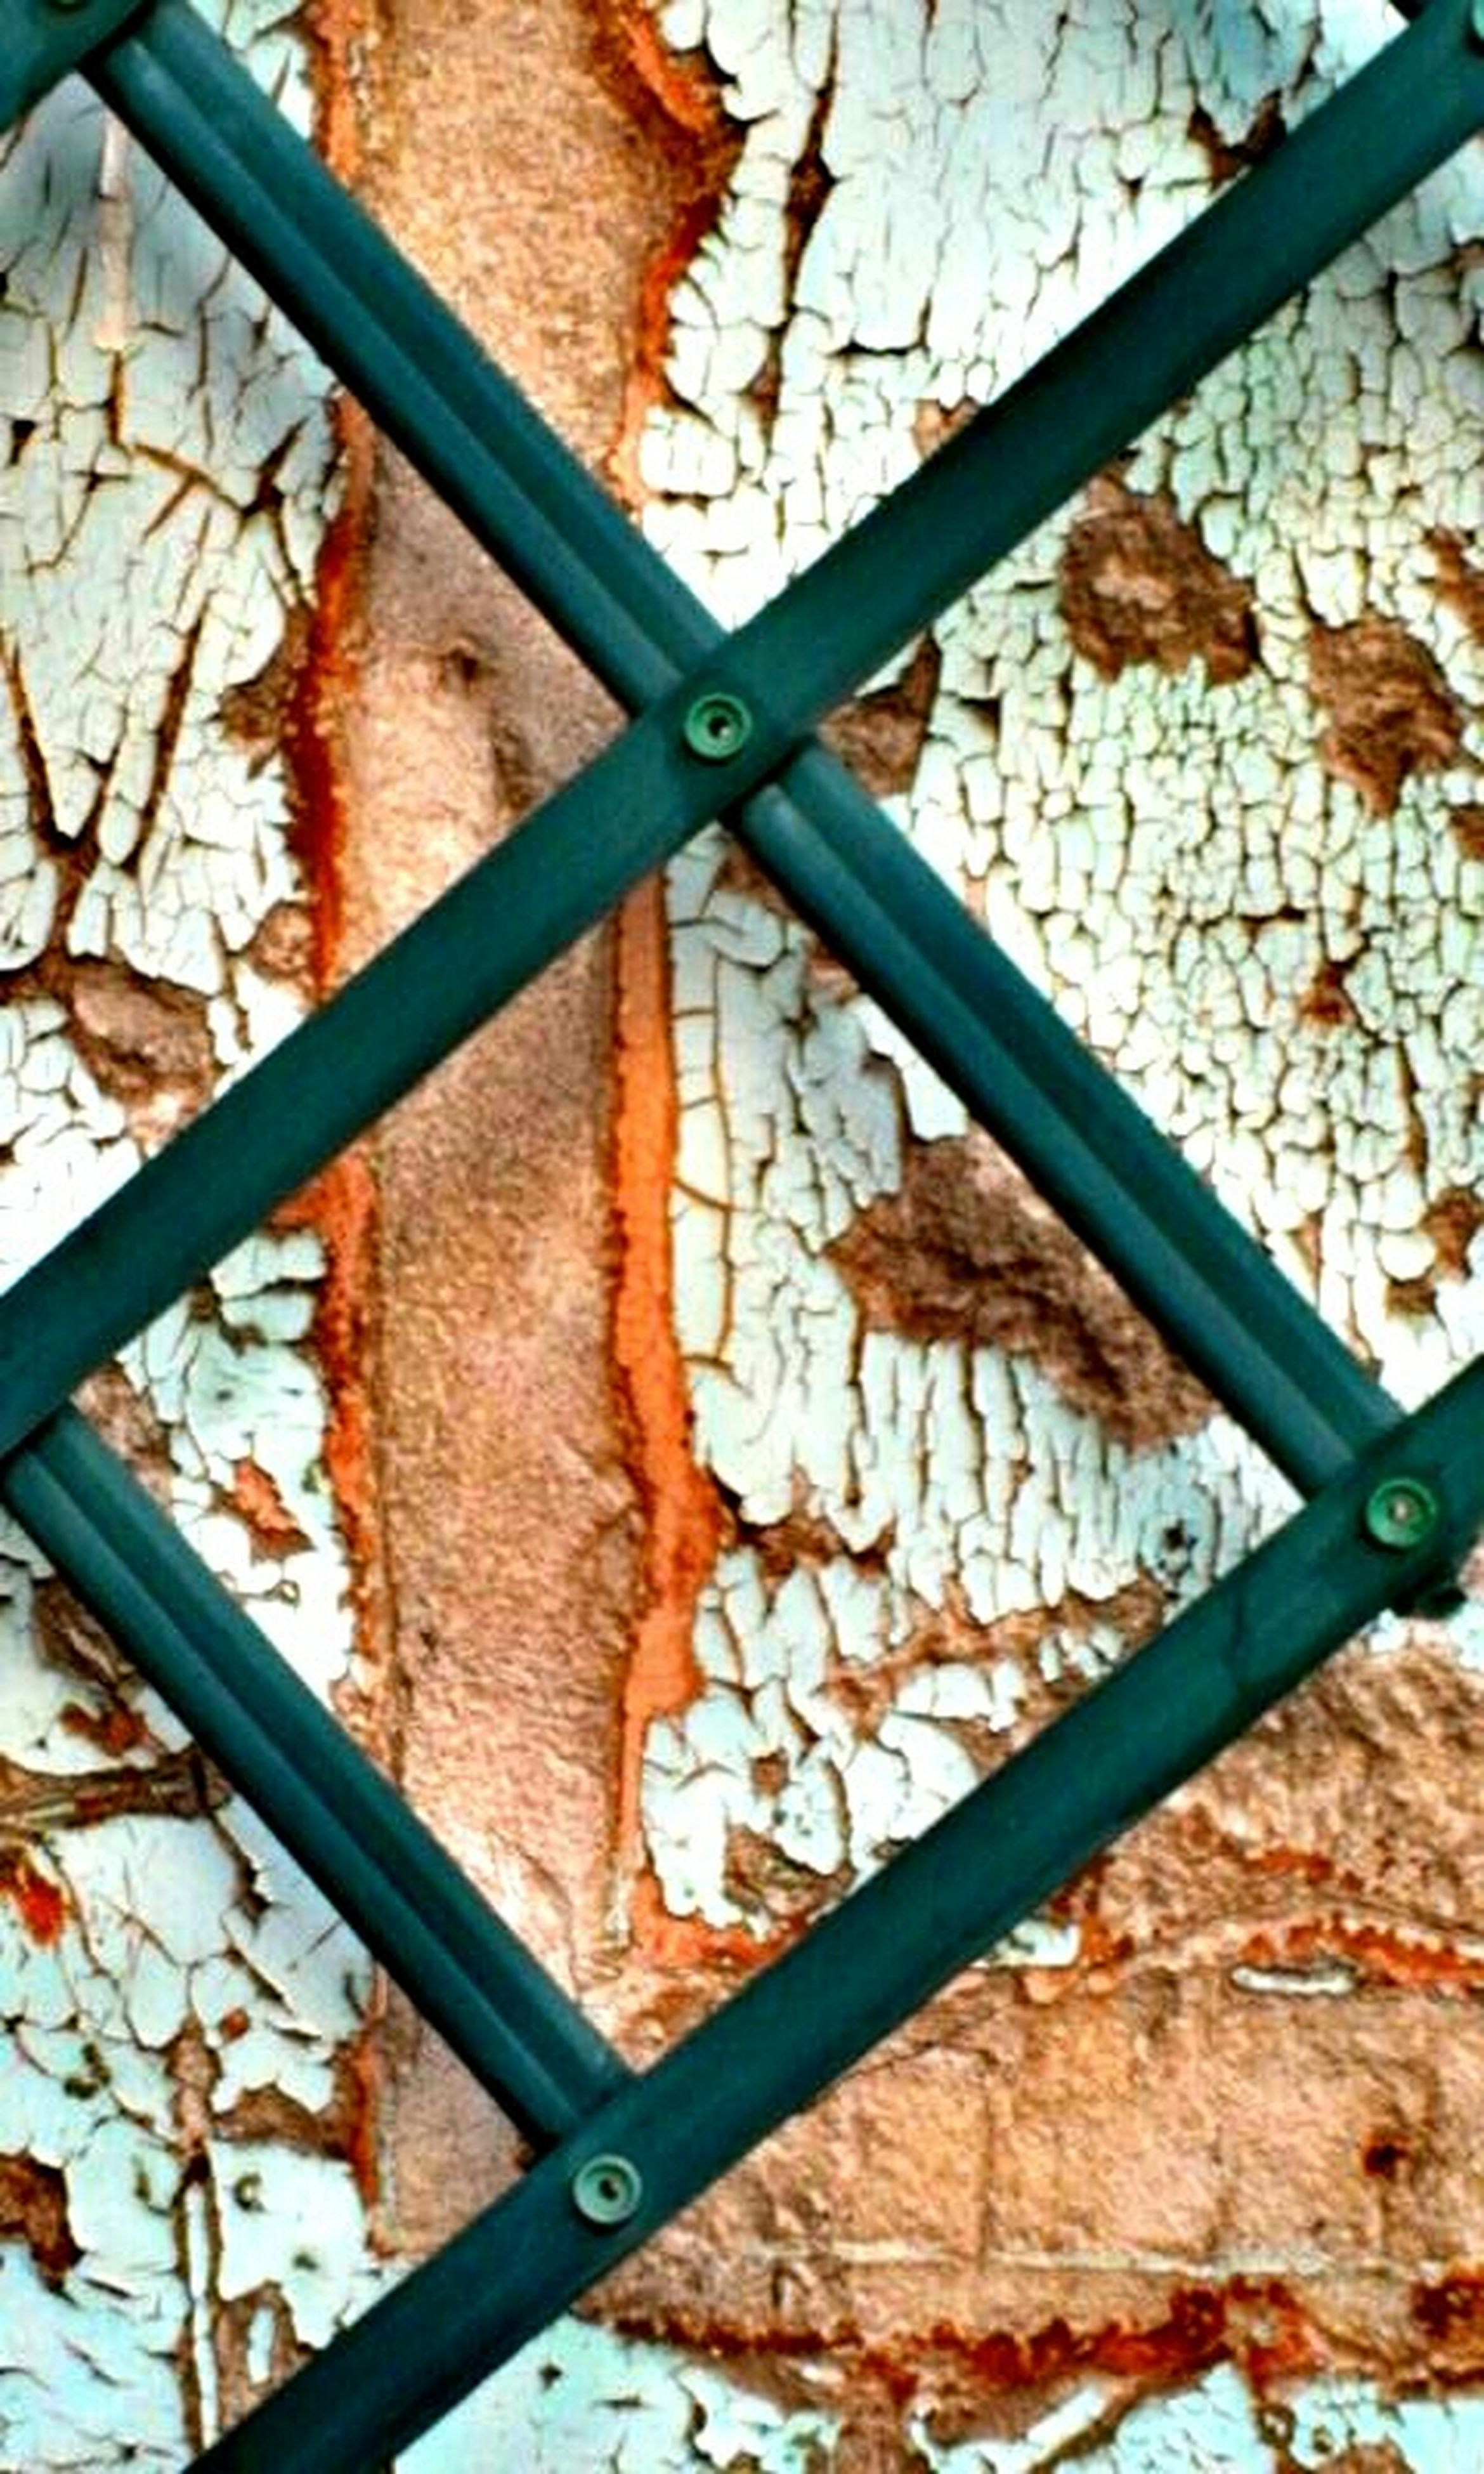 metal, full frame, chainlink fence, fence, backgrounds, close-up, protection, safety, rusty, metallic, railing, security, pattern, day, metal grate, textured, no people, outdoors, dry, sunlight